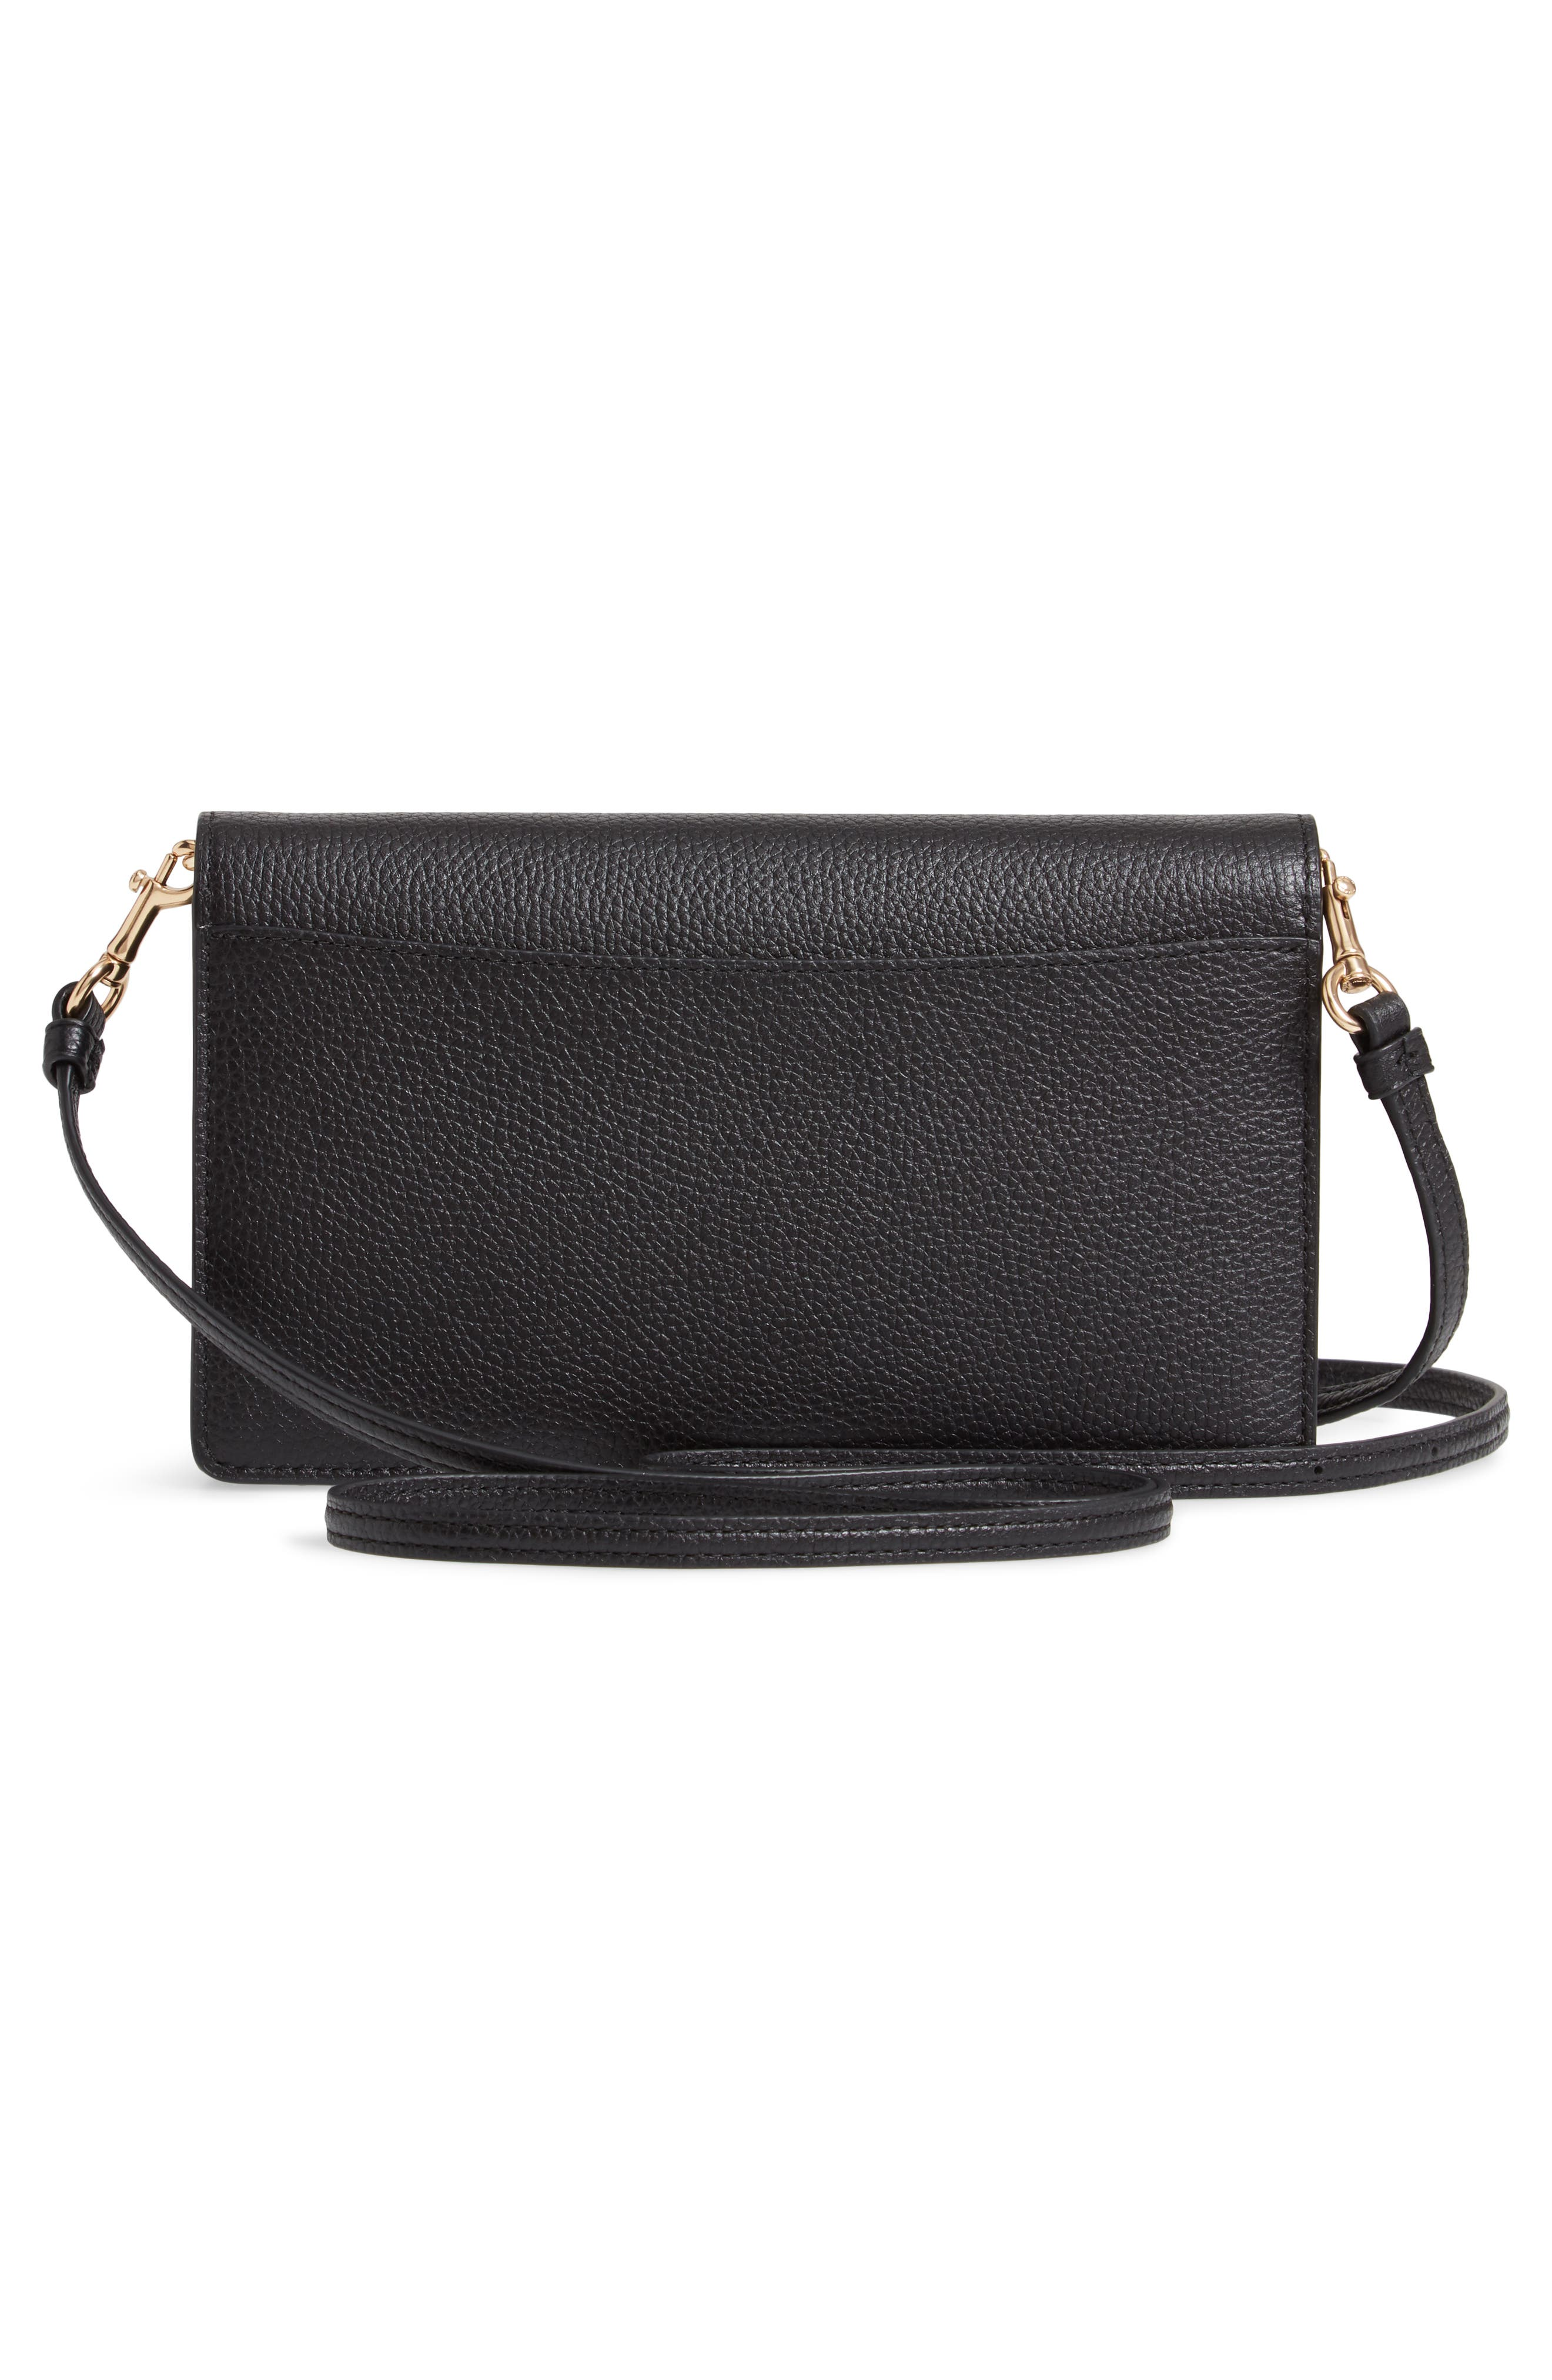 COACH,                             Foldover Calfskin Leather Convertible Clutch,                             Alternate thumbnail 3, color,                             LI/ BLACK